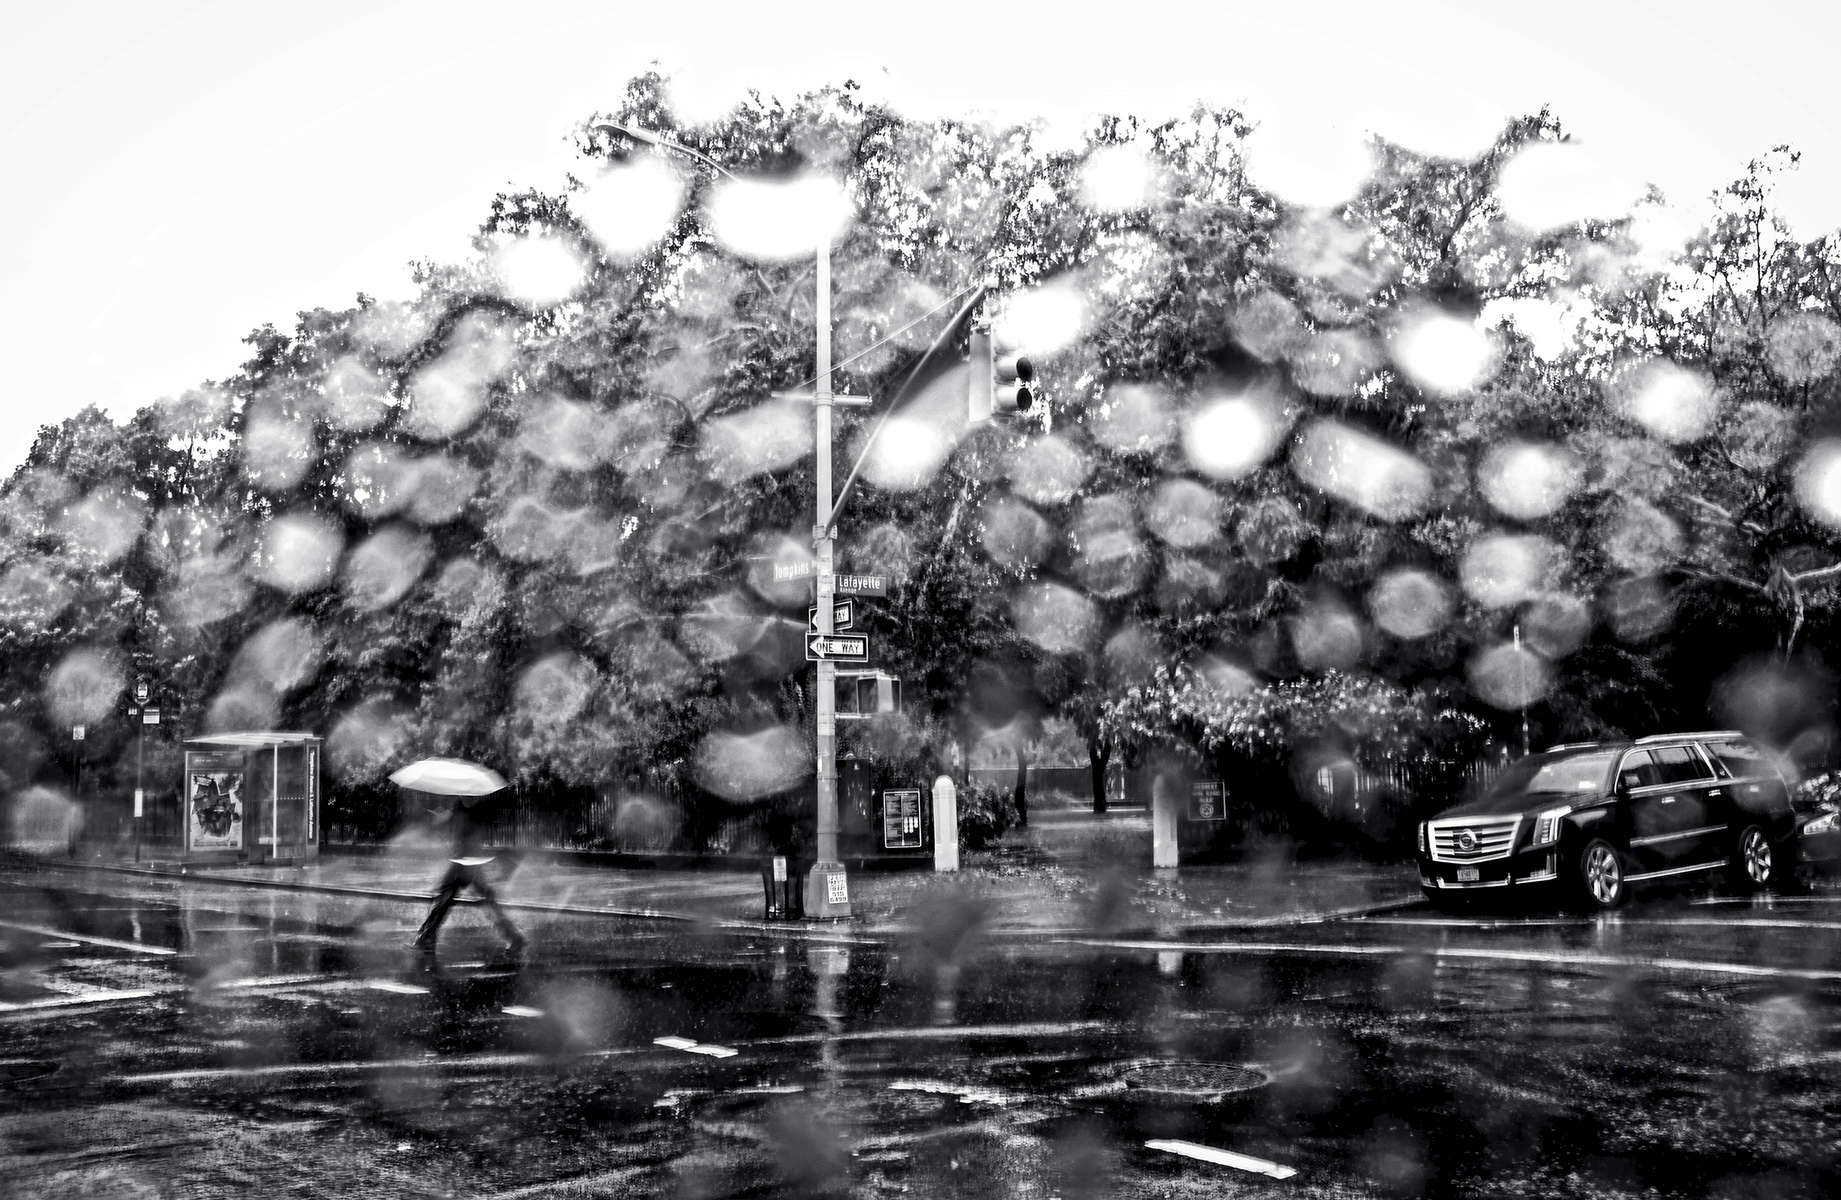 A man walks by Herbert Von King Park on a rainy day in Brooklyn, NY on July 24, 2017.Yana Paskova for The Wall Street JournalSLUG: RAIN